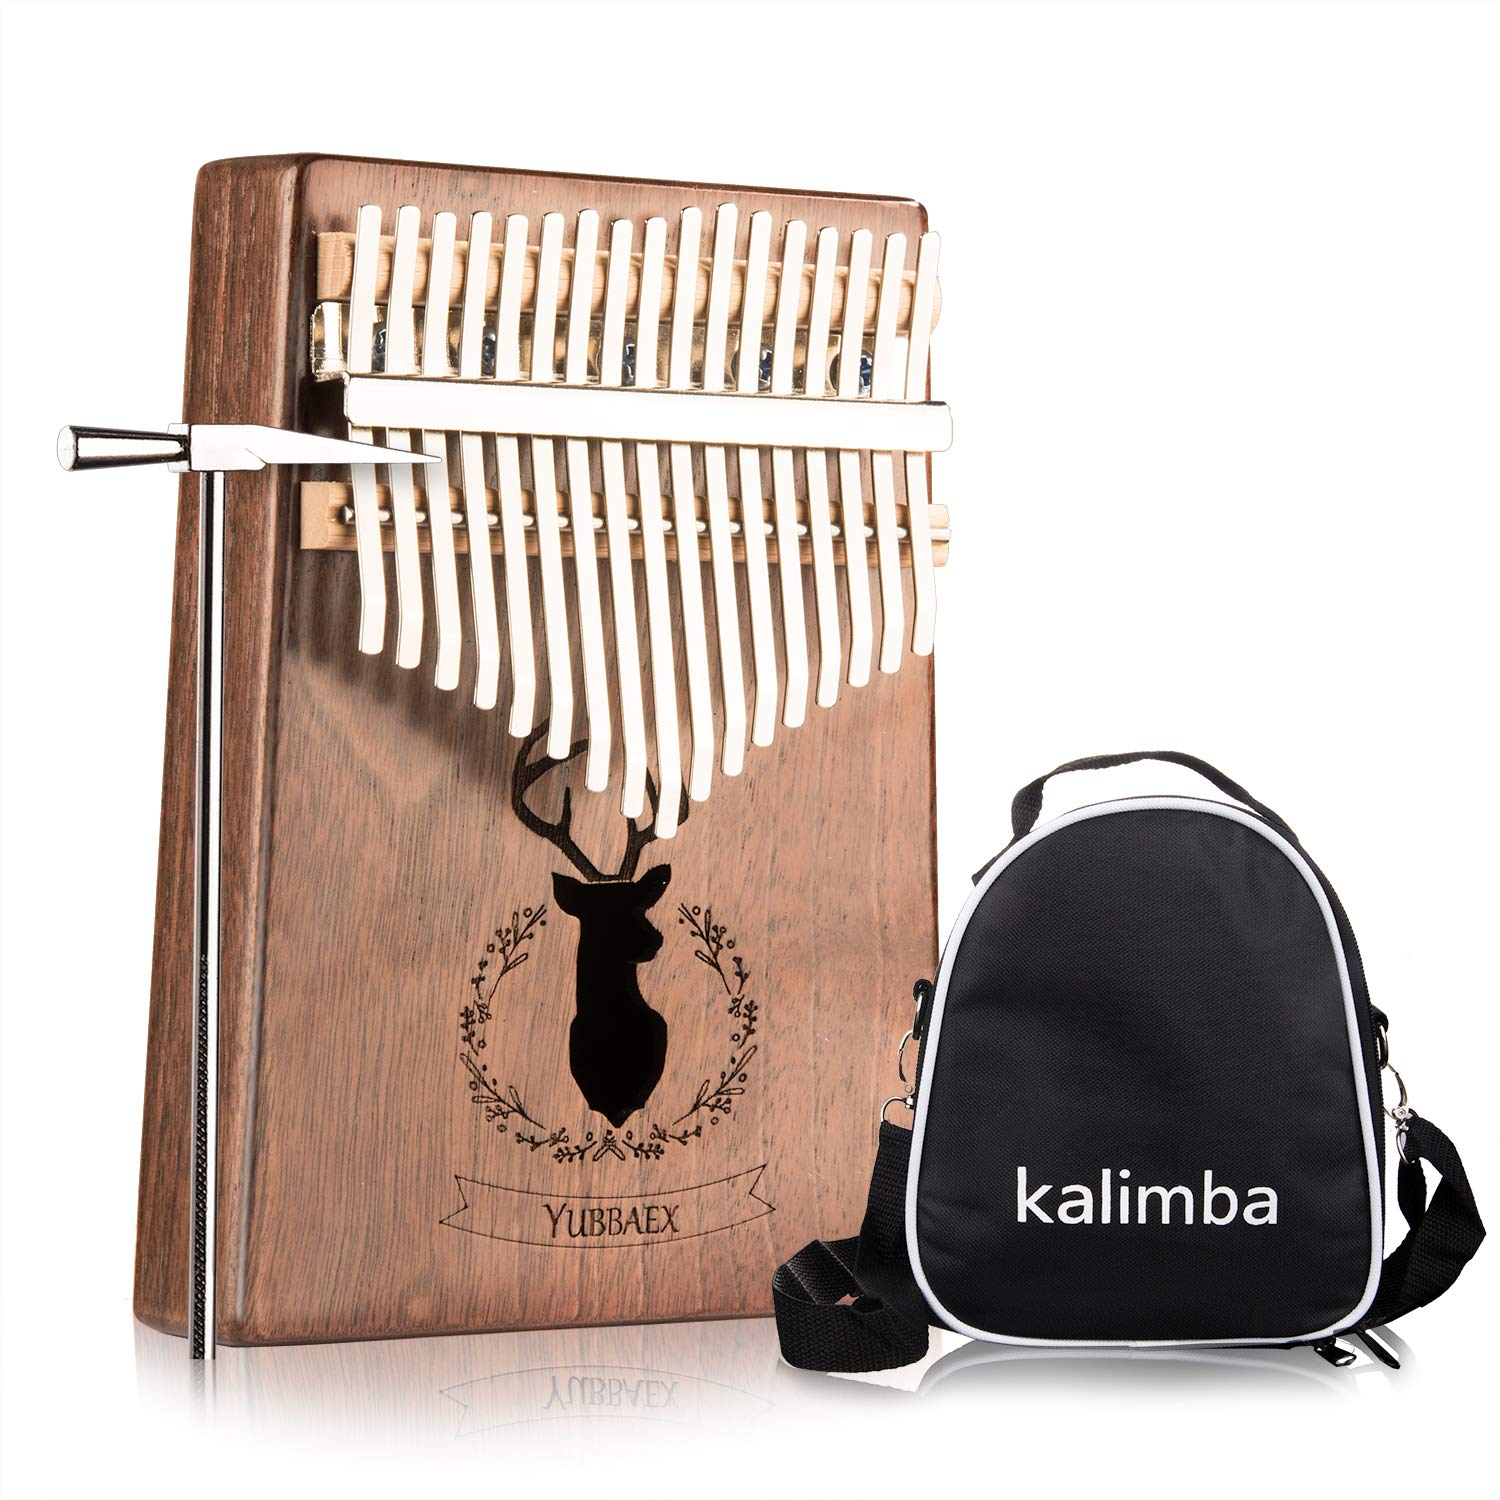 YBx Thumb Piano 17 Keys Kalimba African Animal Finger Music Instrument Gift with EVA High-performance Box (Koa Elk)